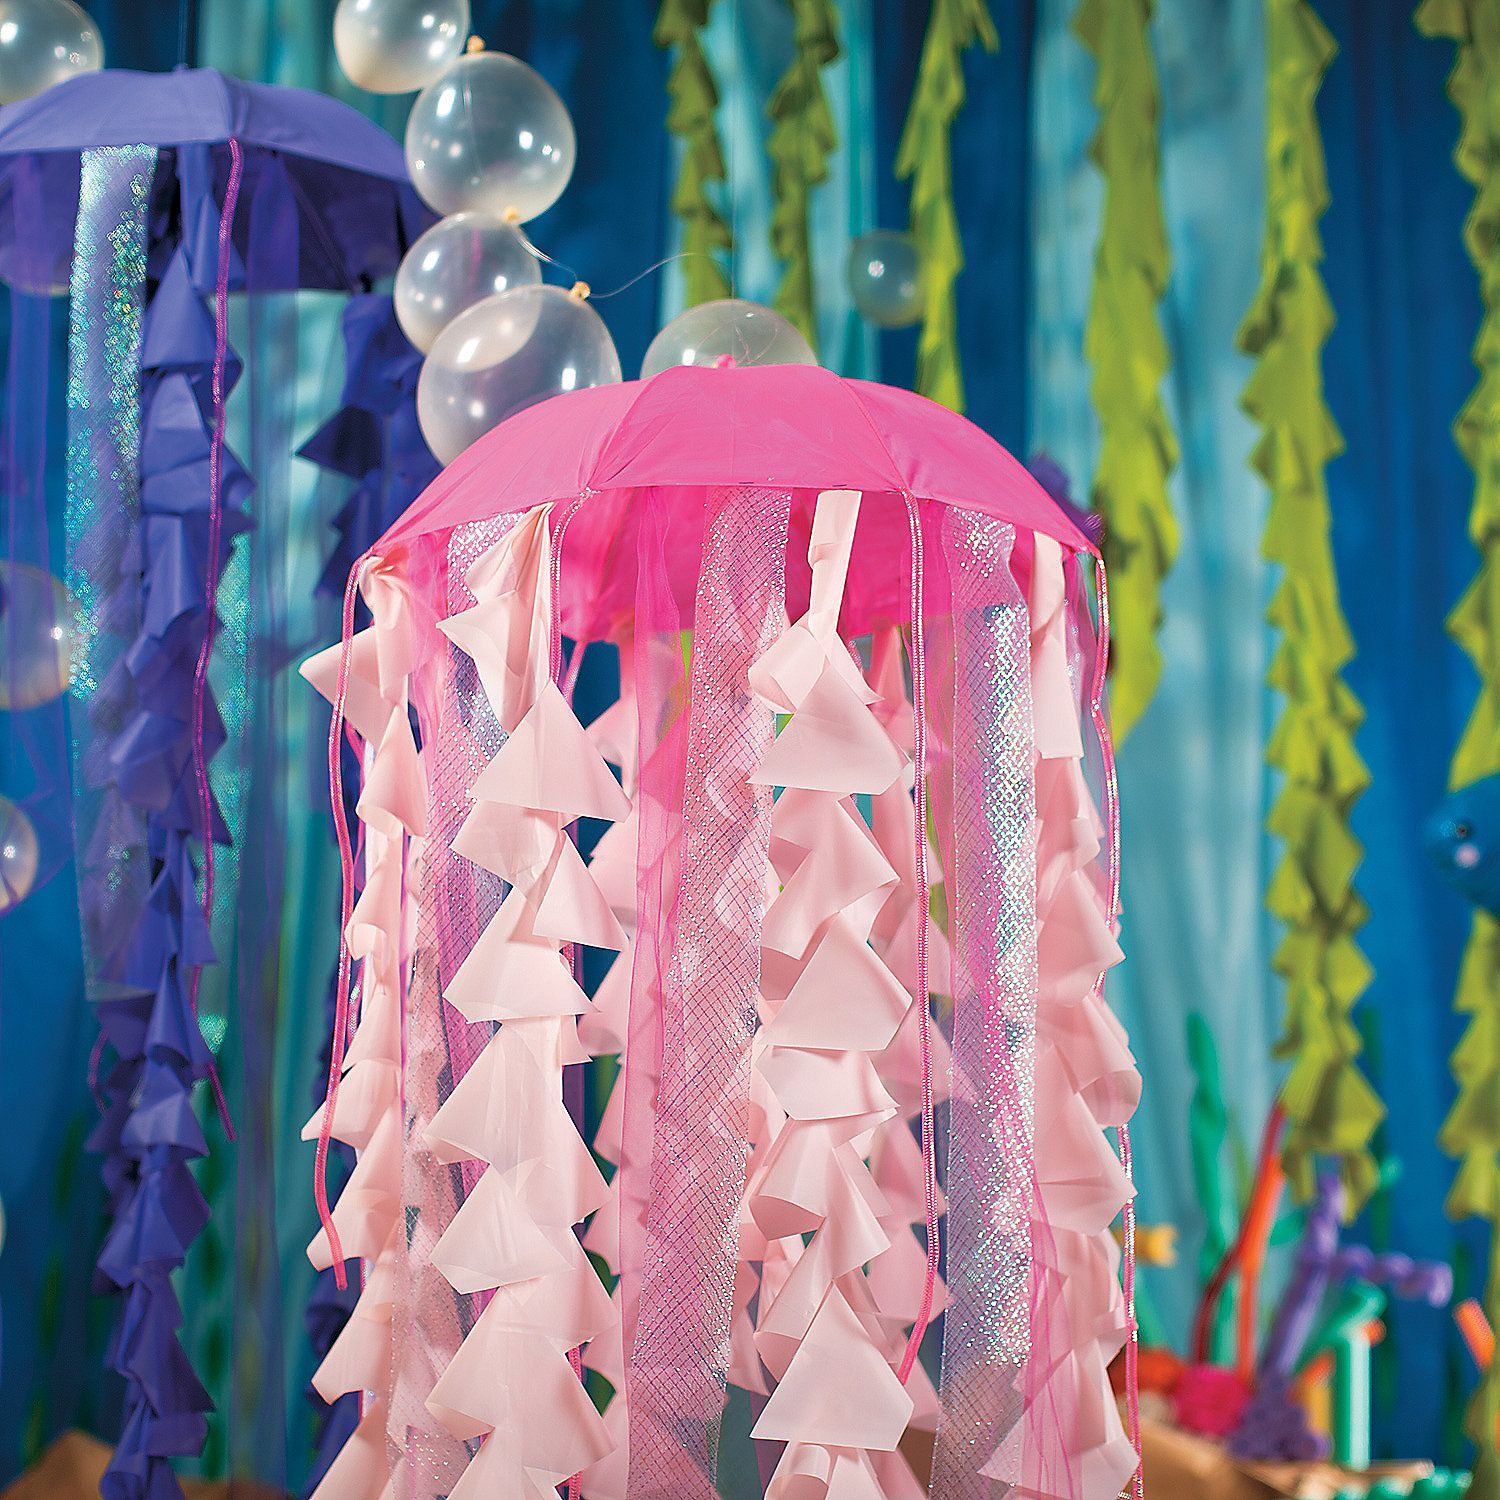 Diy Jellyfish Decorations Your Under The Sea Vbs Will Need Some Sea Life And This Diy Jelly